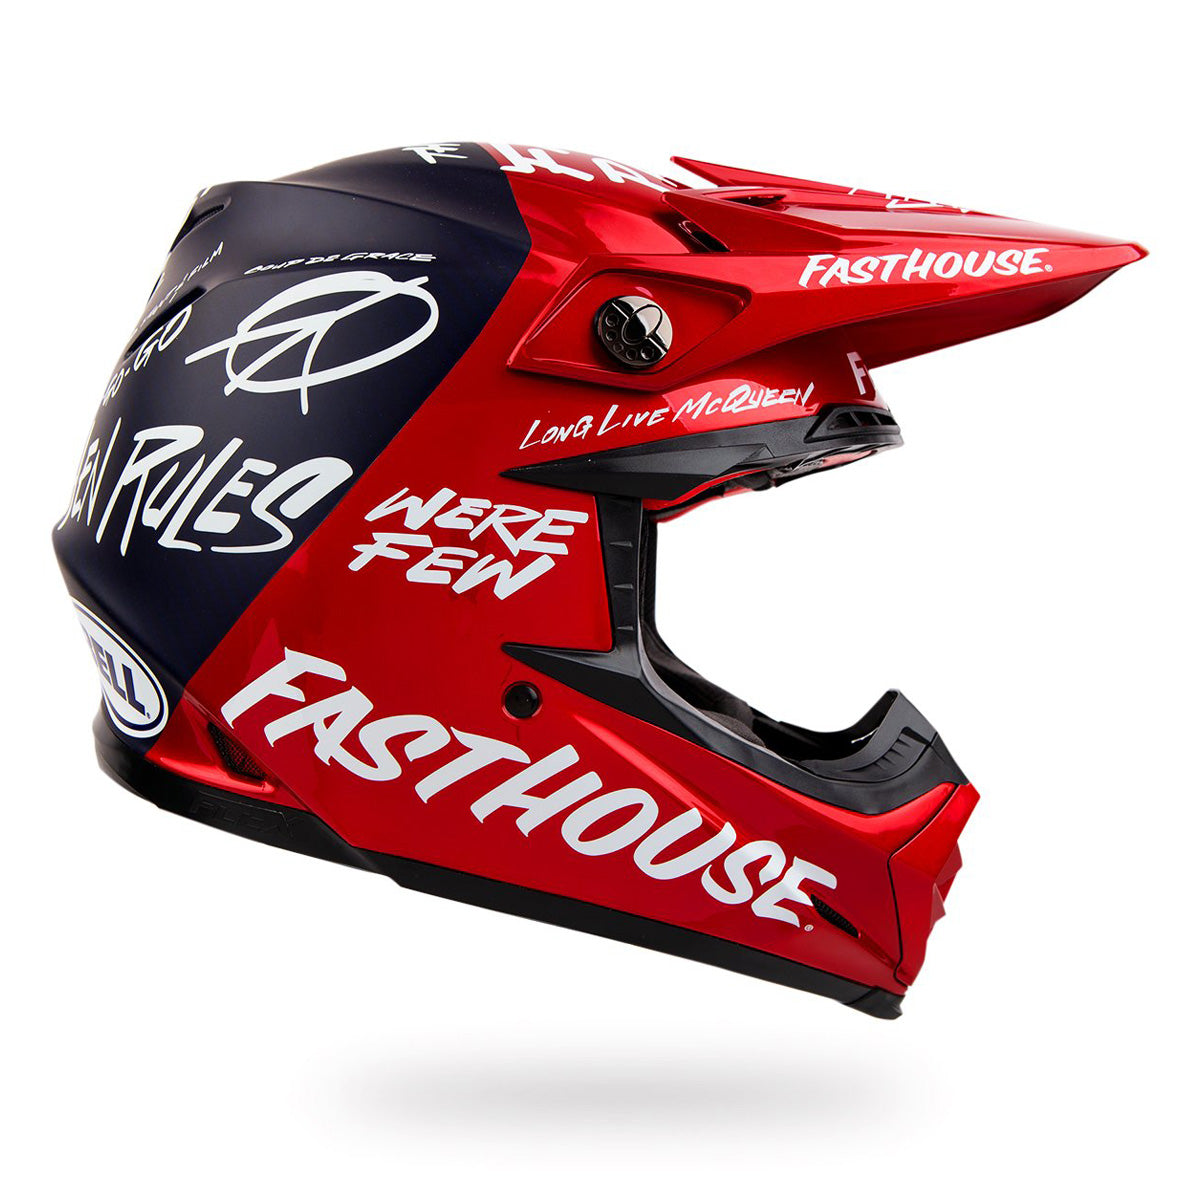 Fasthouse - Bell Day in the Dirt 21 Moto9 Flex Helmet - Red